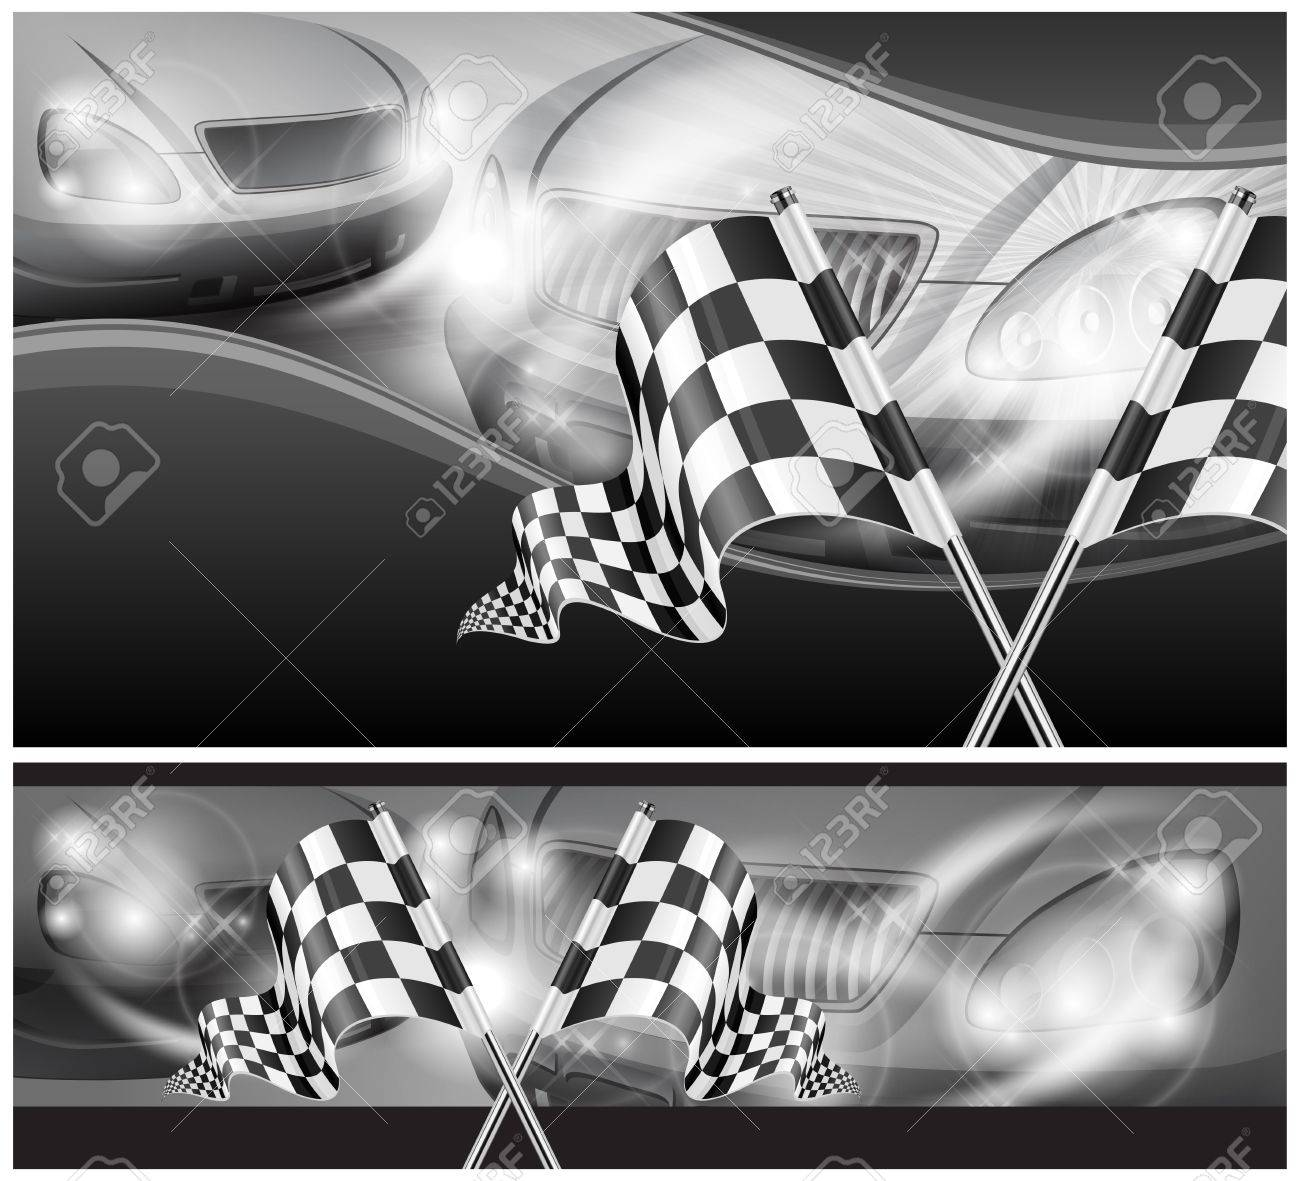 Two crossed checkered flags on auto background, vector illustration Stock Vector - 16646768